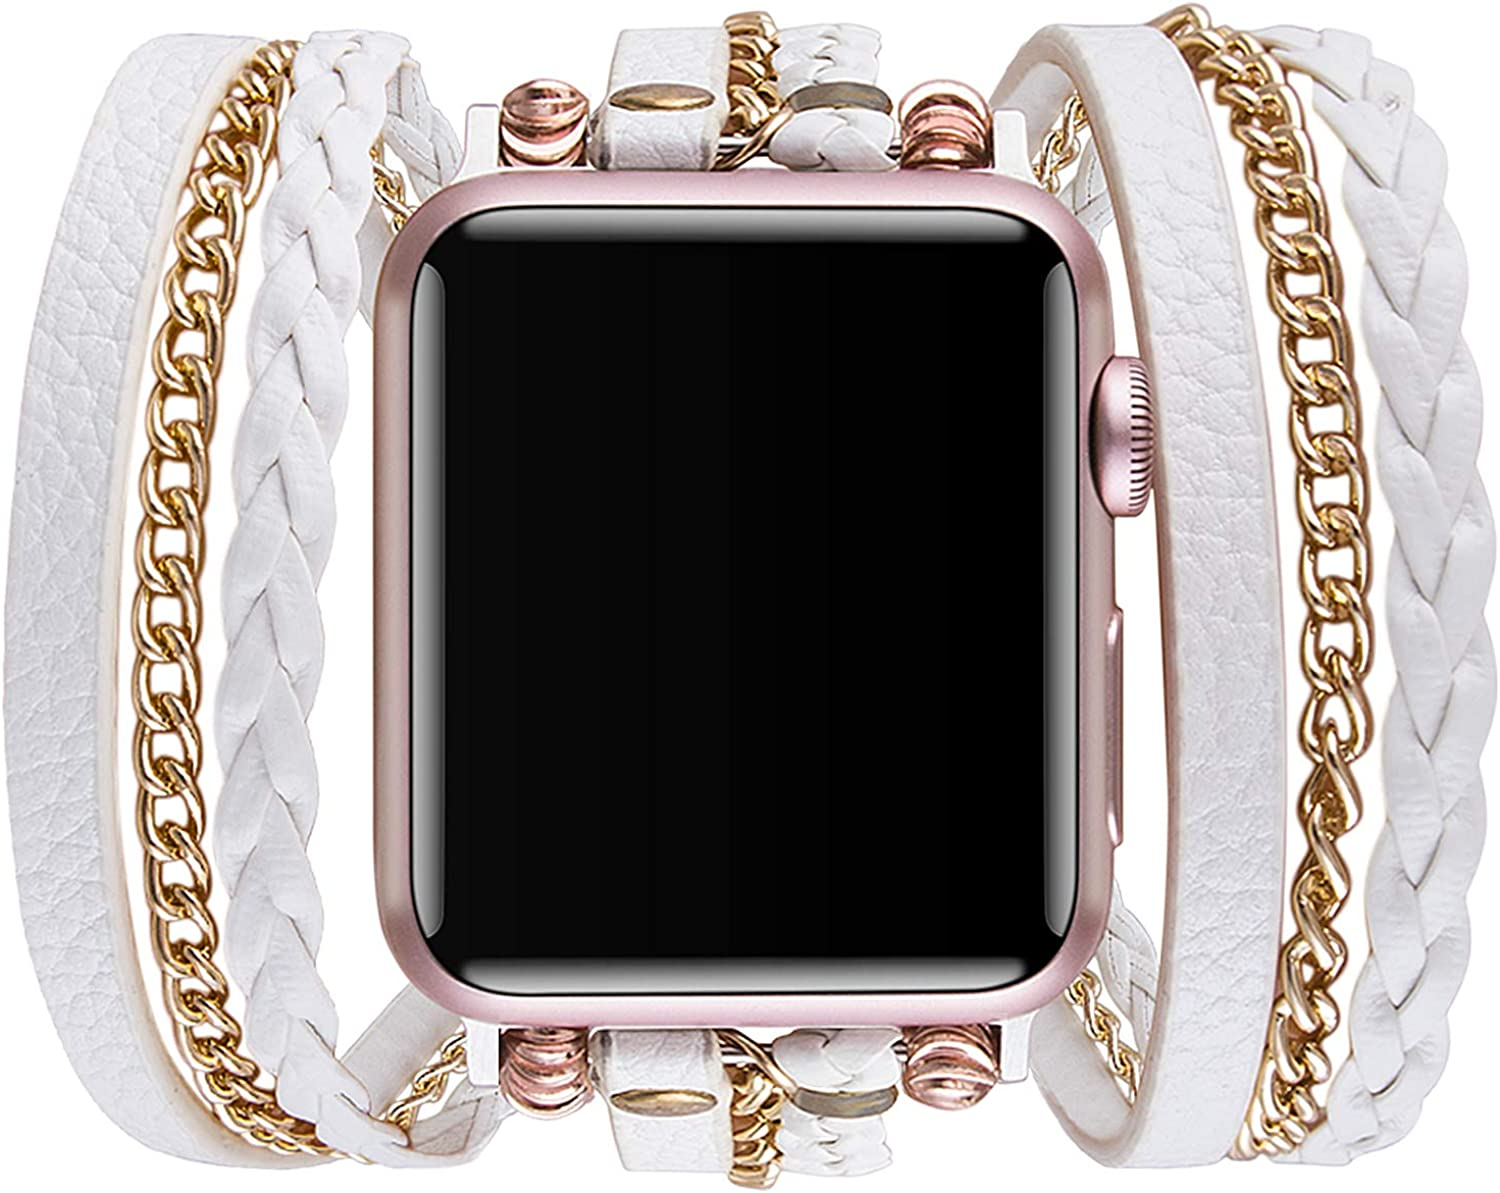 Vikoros Bracelet Bands Compatible with Apple Watch Band 44mm 42mm 40mm 38mm, Leather Dressy Strap Replacement Compatible with iWatch Series 5 4 3 2 Sports&Edition Wristbands for Women